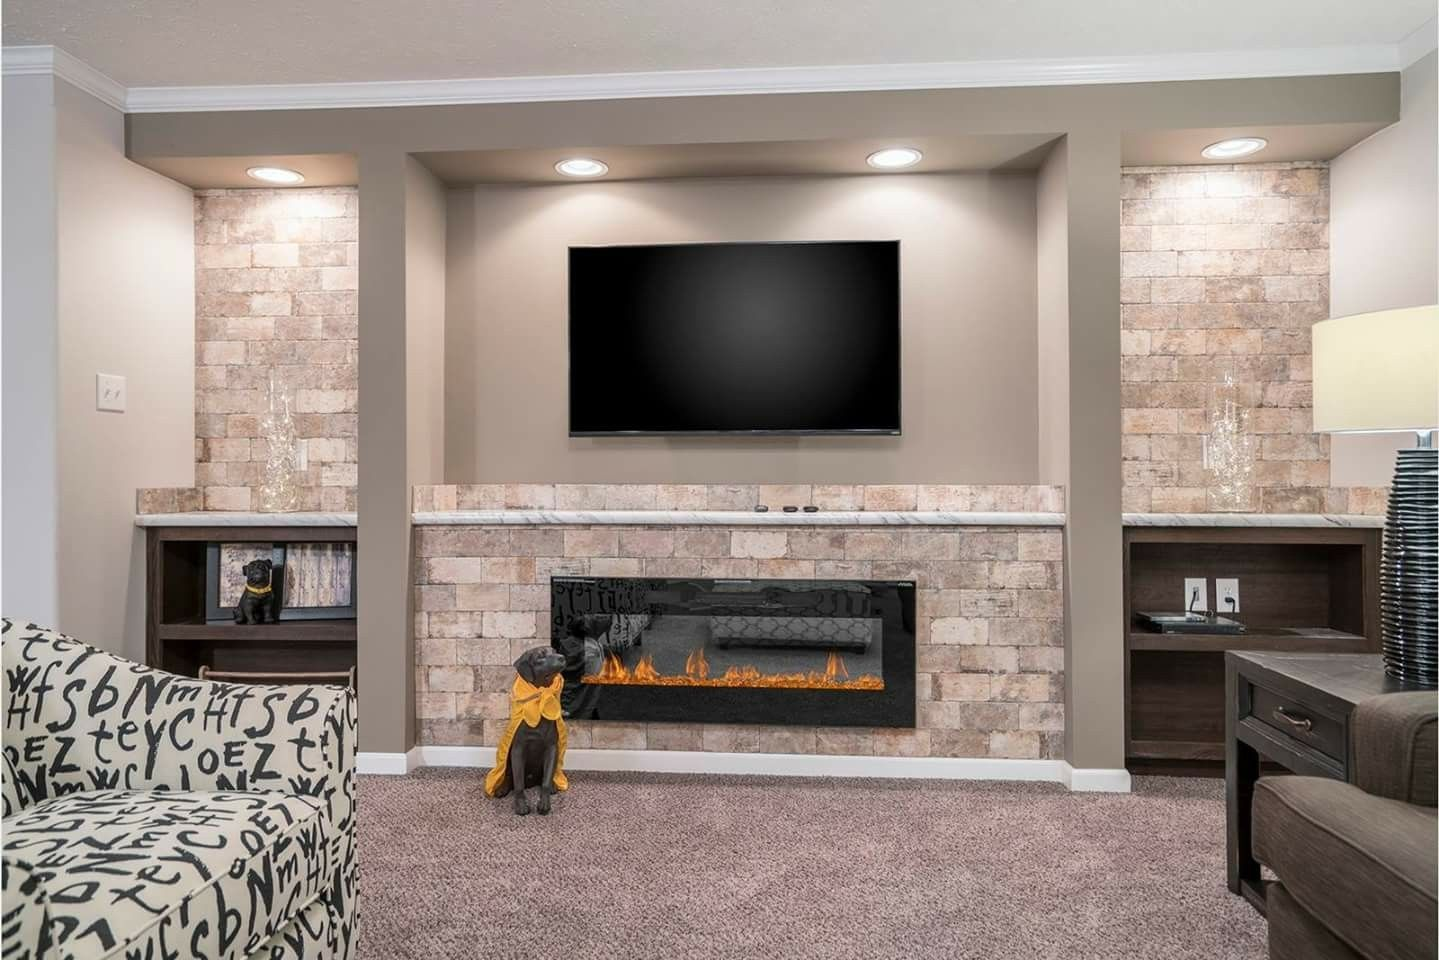 Great Fireplace Idea Living Room Remodel Room Remodeling